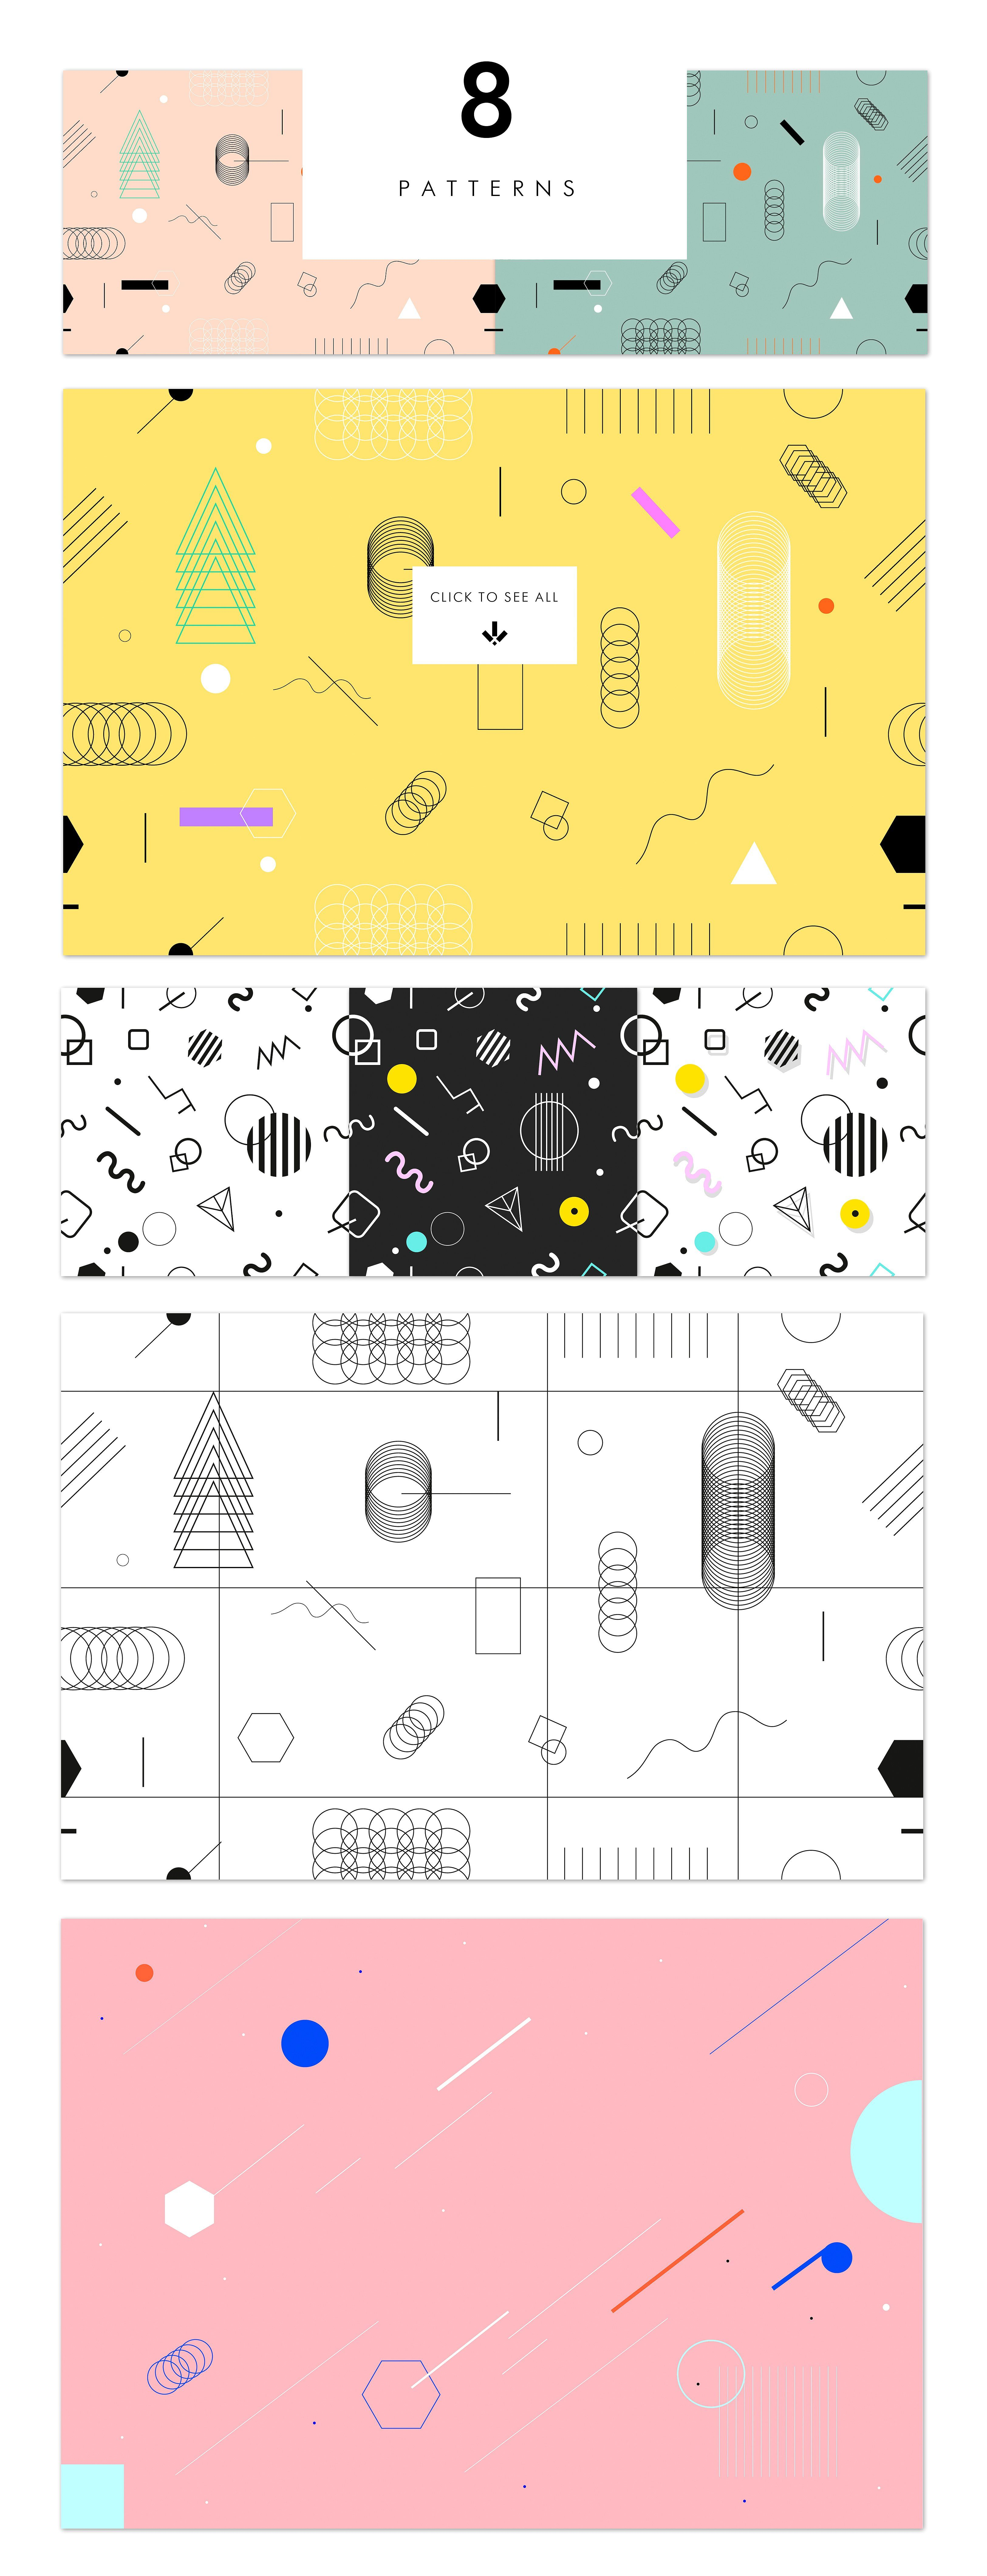 Holographic backgrounds + patterns - Get the biggest trend in visual design now! 12 holographic backgrounds + surreal 5 posters and 8 geometric seamless patterns ( NOT mock ups ). Transport yourself back to the future - it's a mix of 80's, 90's and futuristic retro-style. Gradients, holographic lights and geometric shapes! By PonyHead $12 #affiliatelink